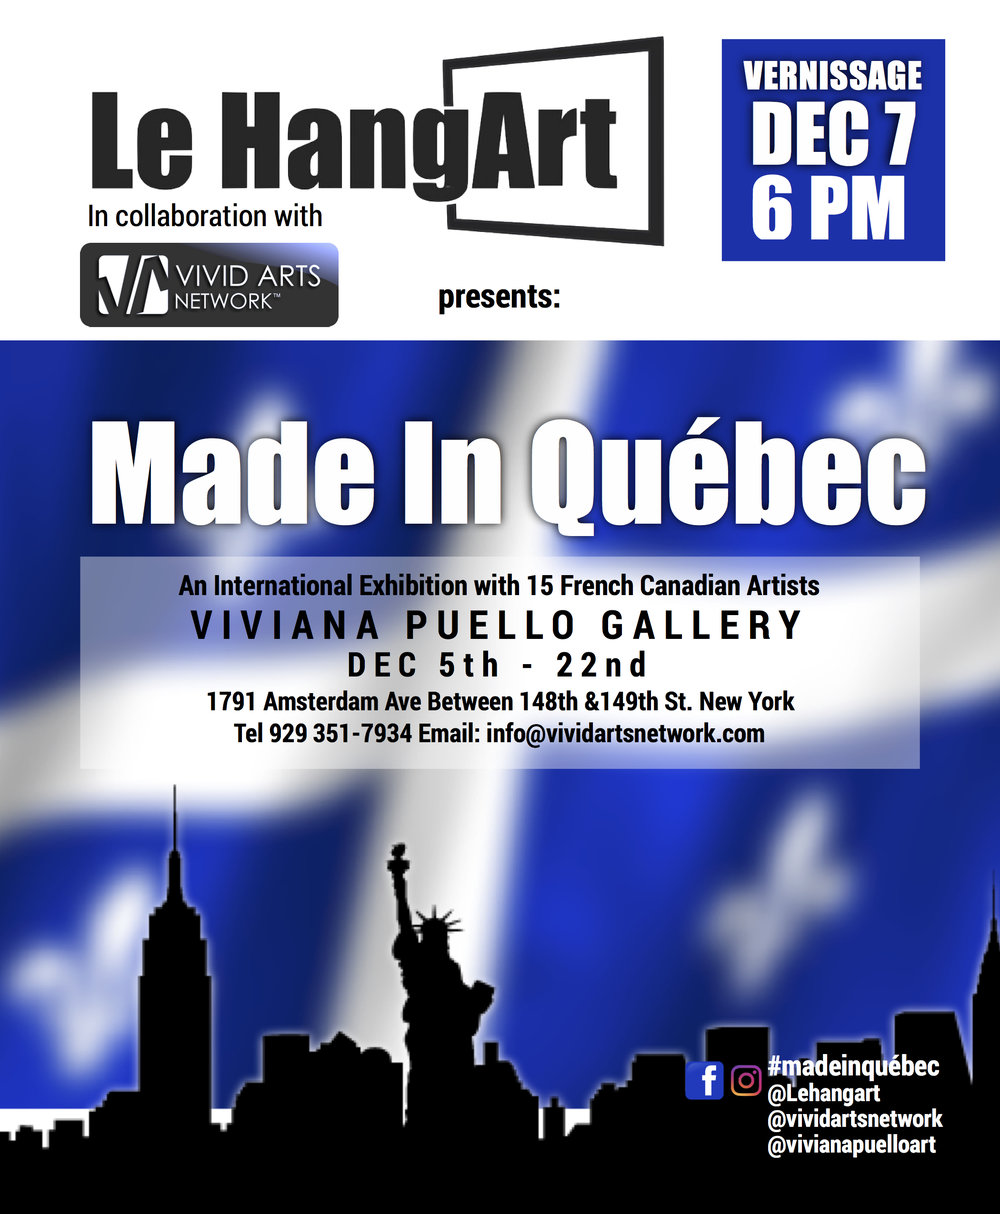 Made in québec - An International Art Exhibition with 15 French Canadian Artists